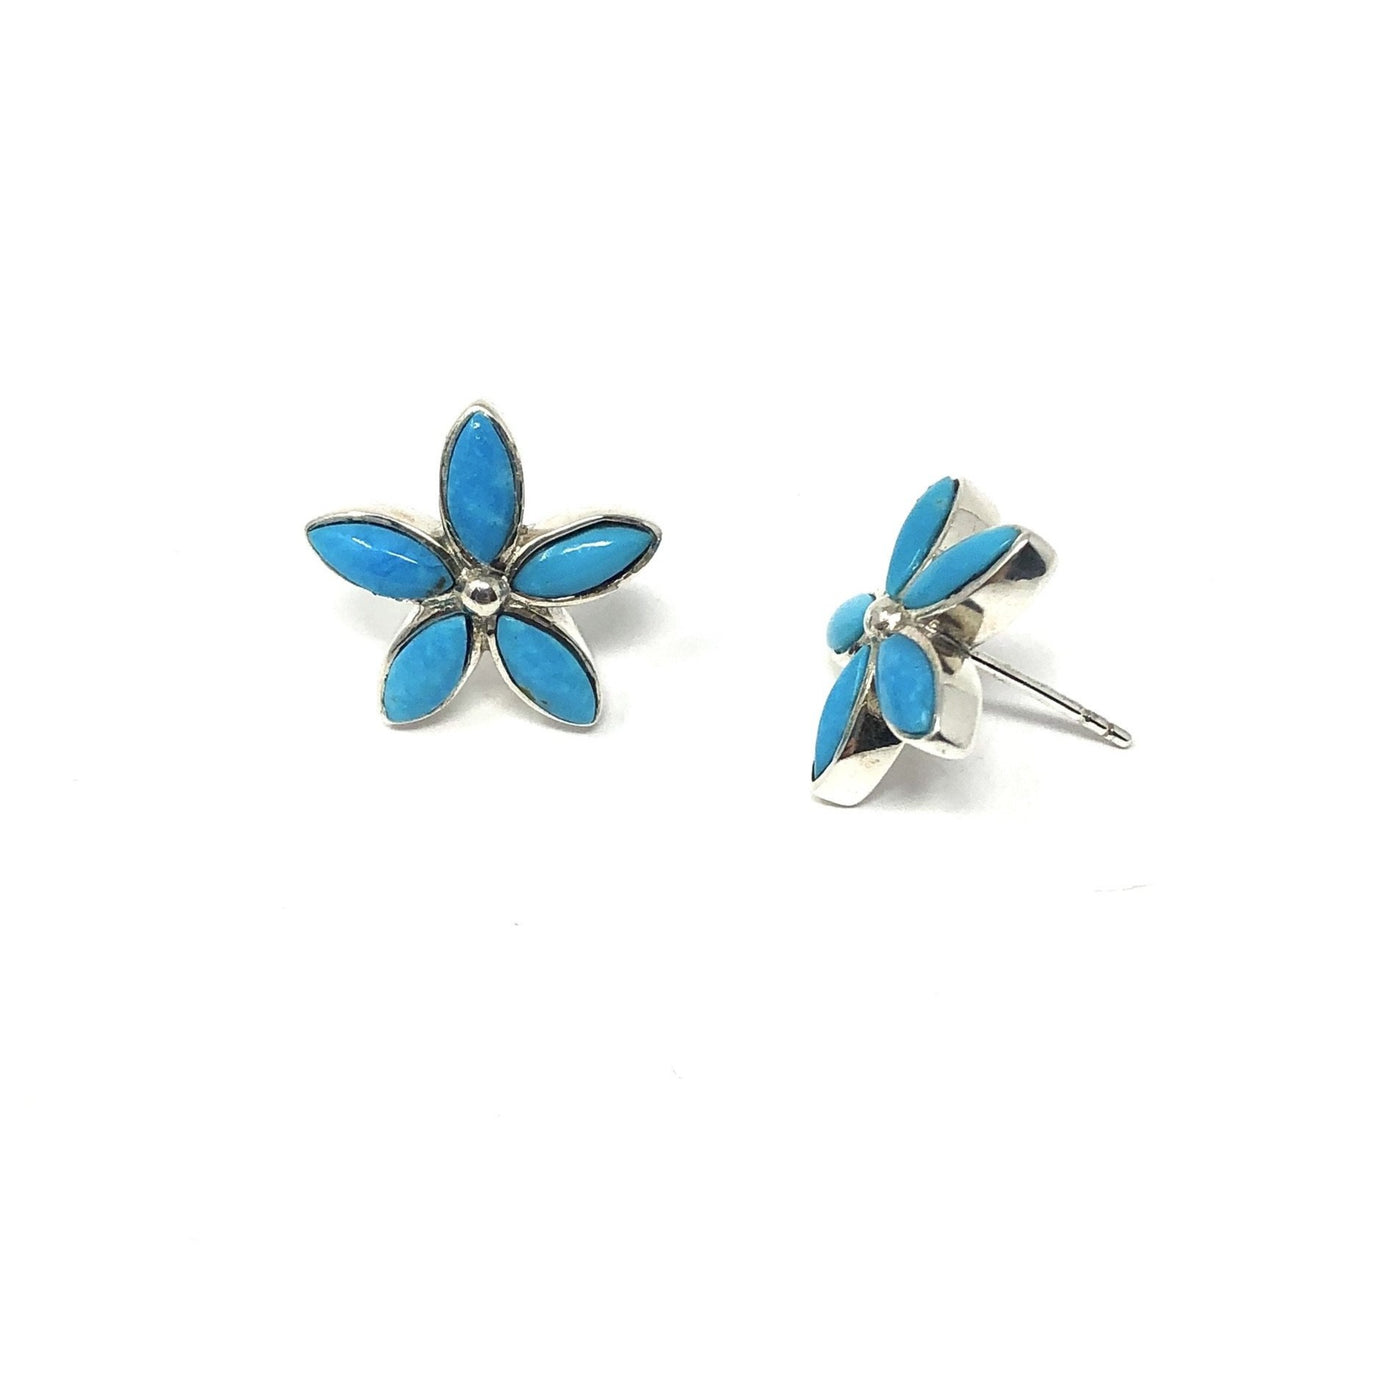 PY TURQUOISE FLOWER POST EARRINGS